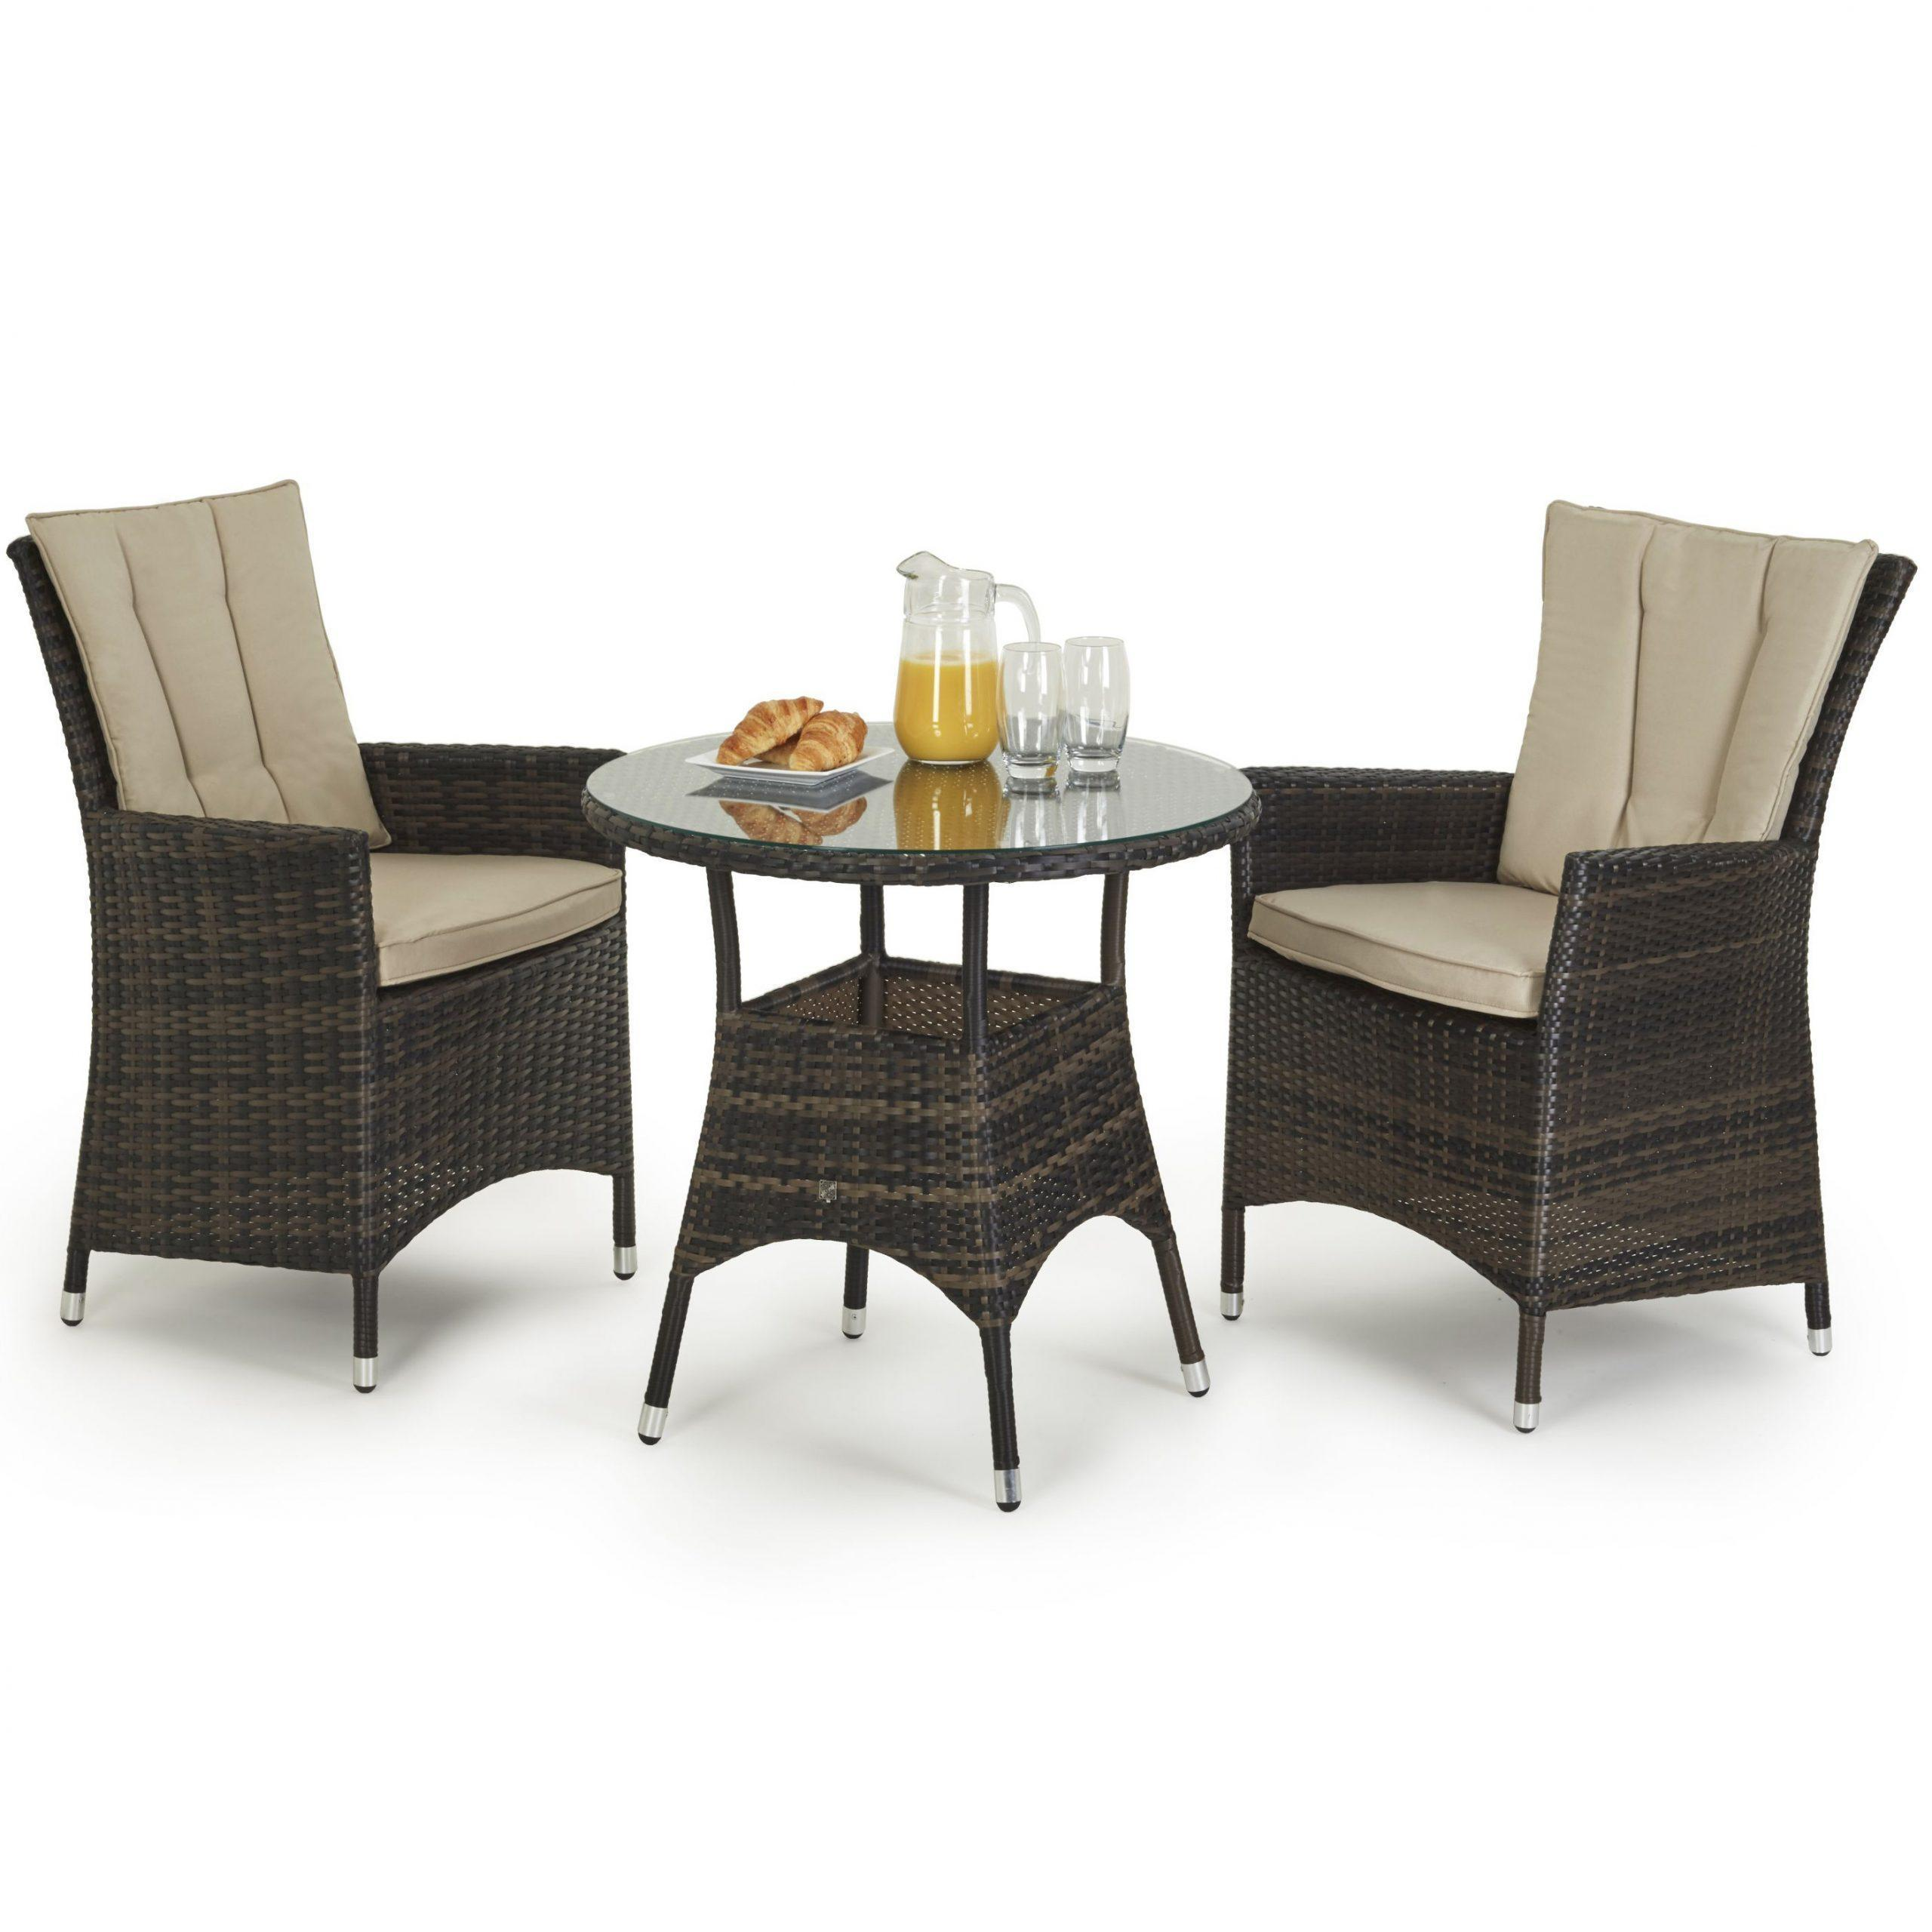 La Bistro Set Round Glass Top Table 2 Chairs Brown Polyweave